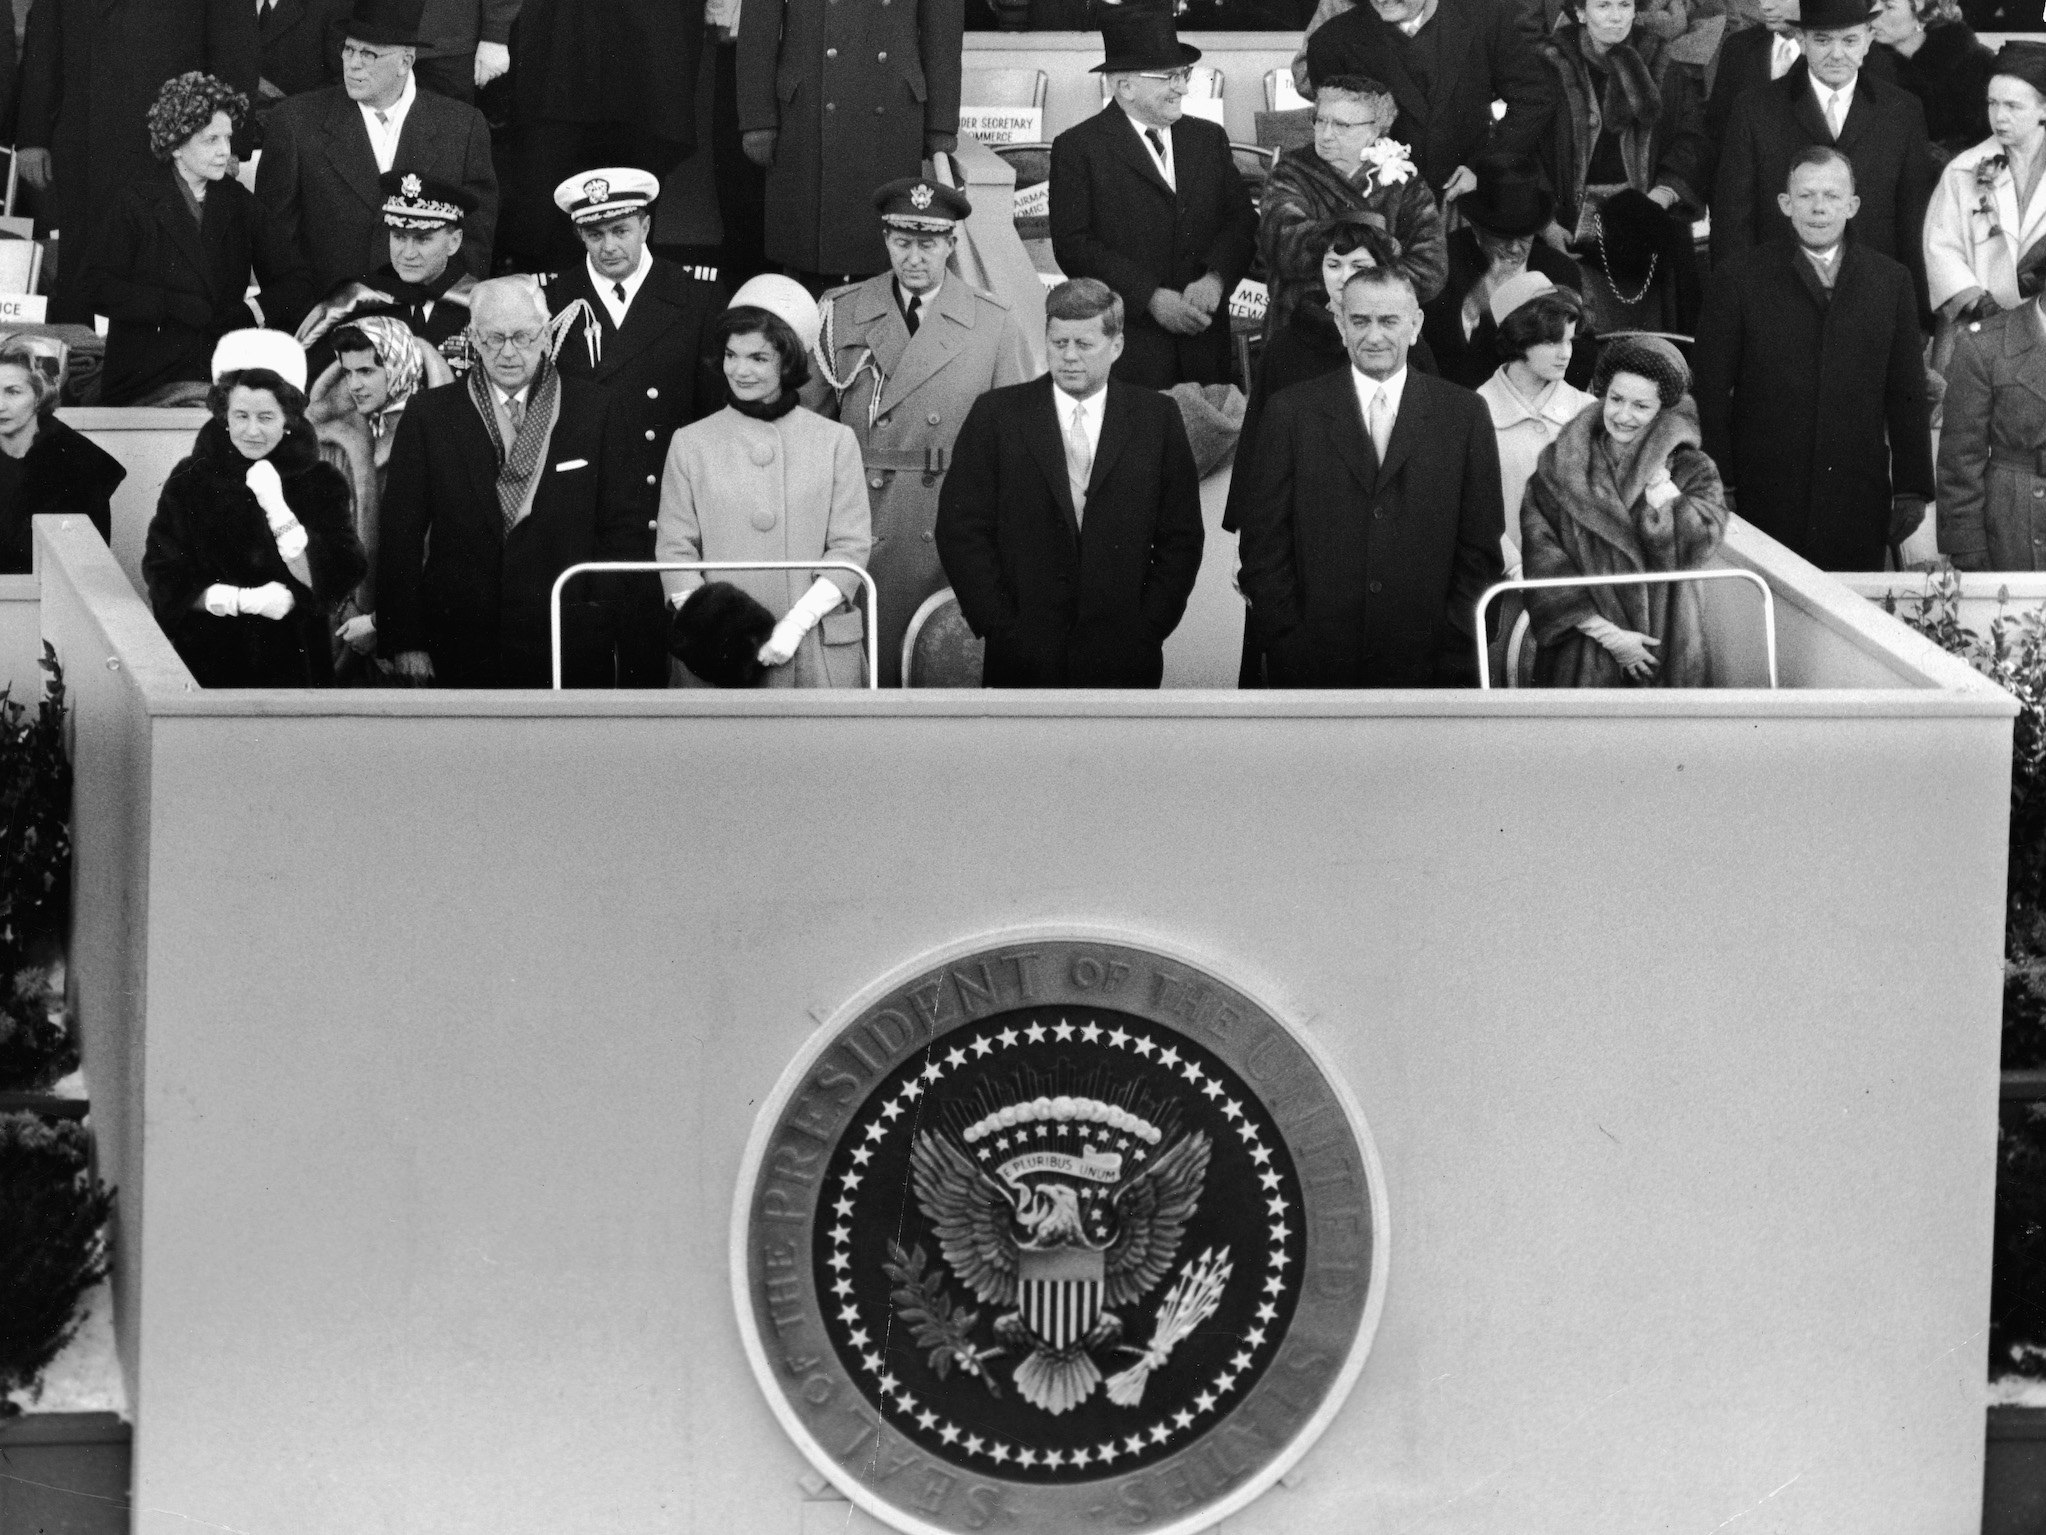 The Inauguration Of President John F. Kennedy